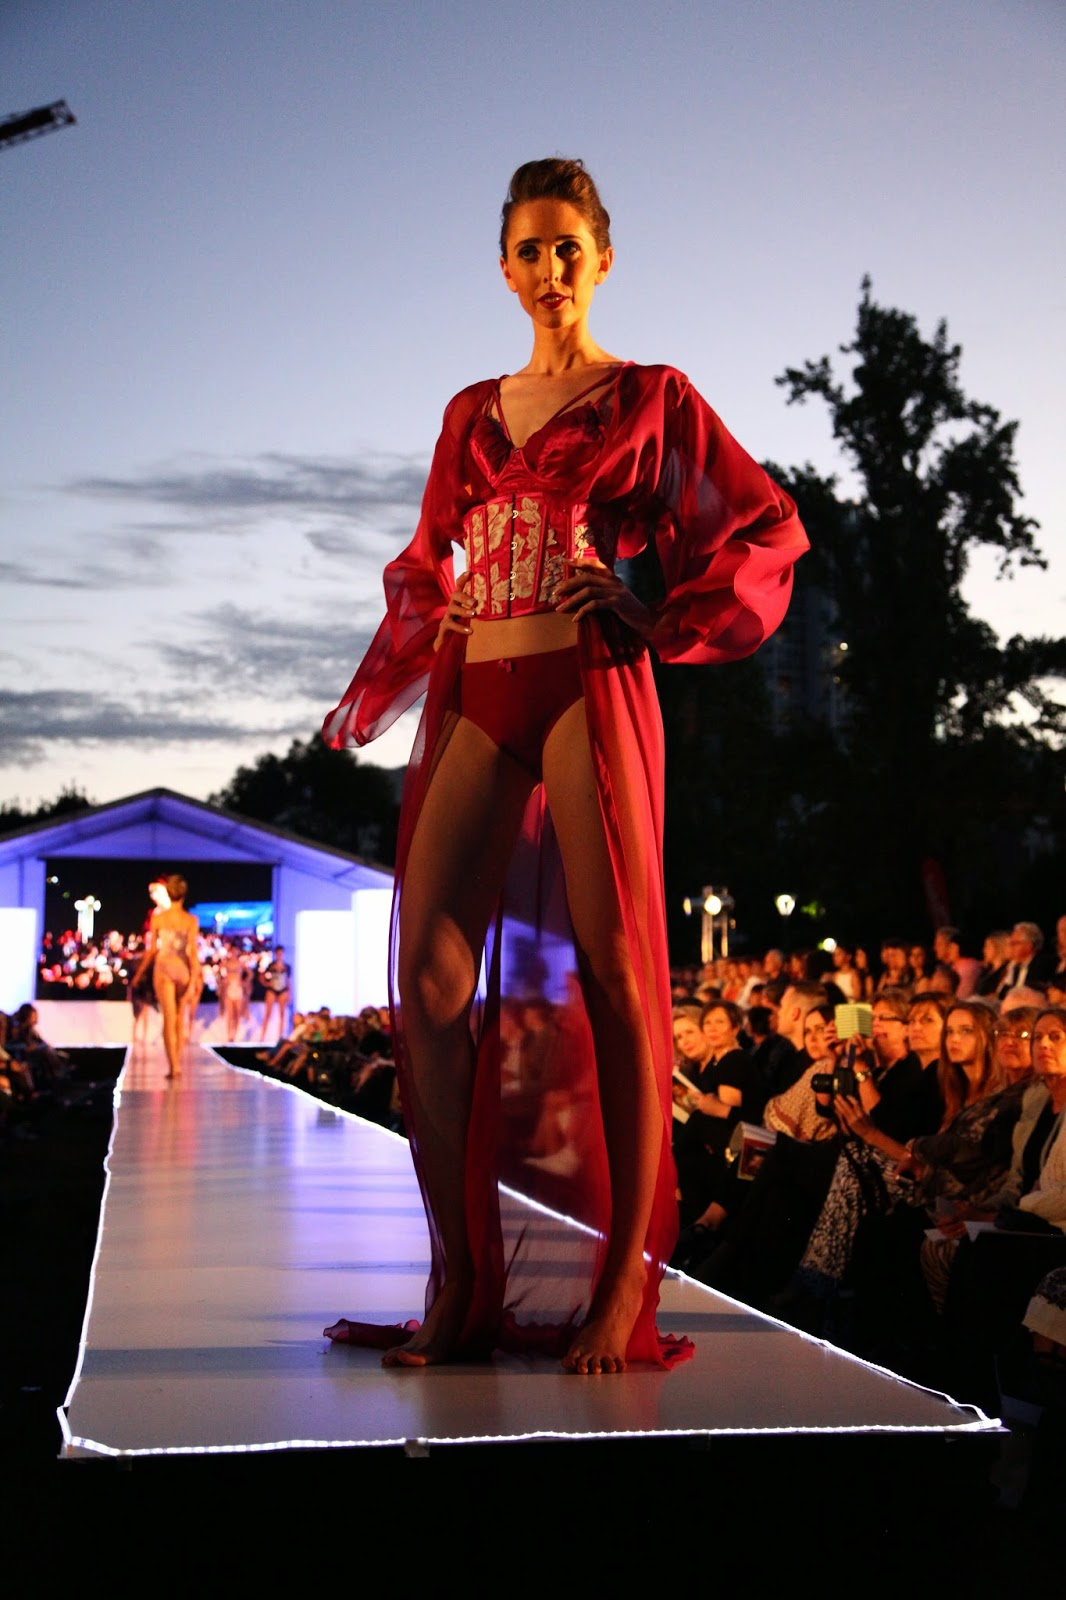 Adelaide 2018 (with Photos Top 20 Places to. - Airbnb) Tafe sa fashion parade